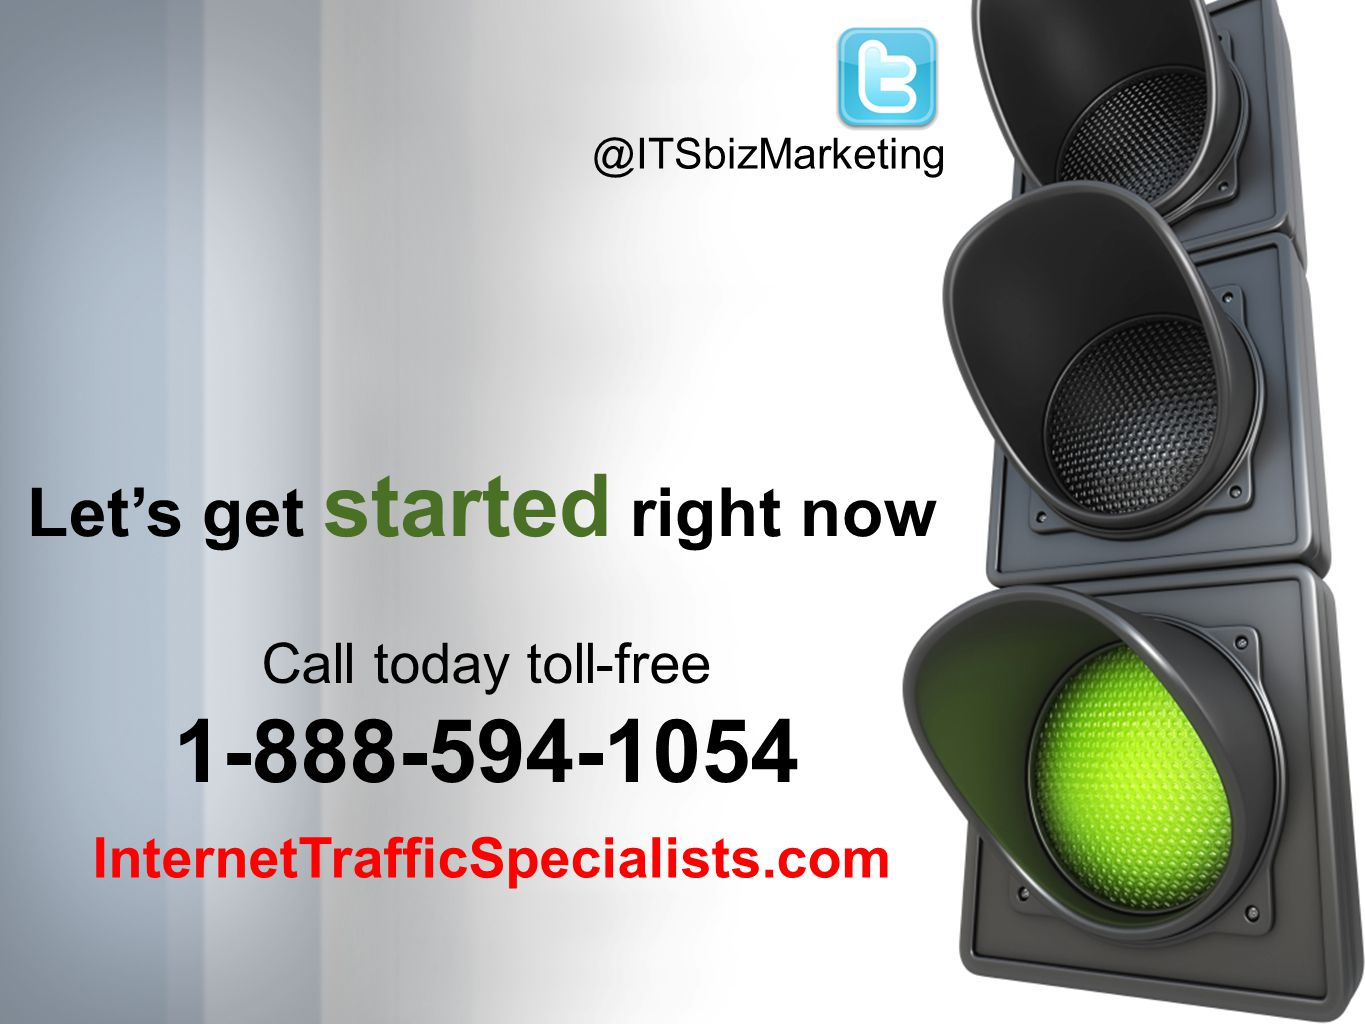 Lets get started right now Call today toll-free InternetTrafficSpecialists.com